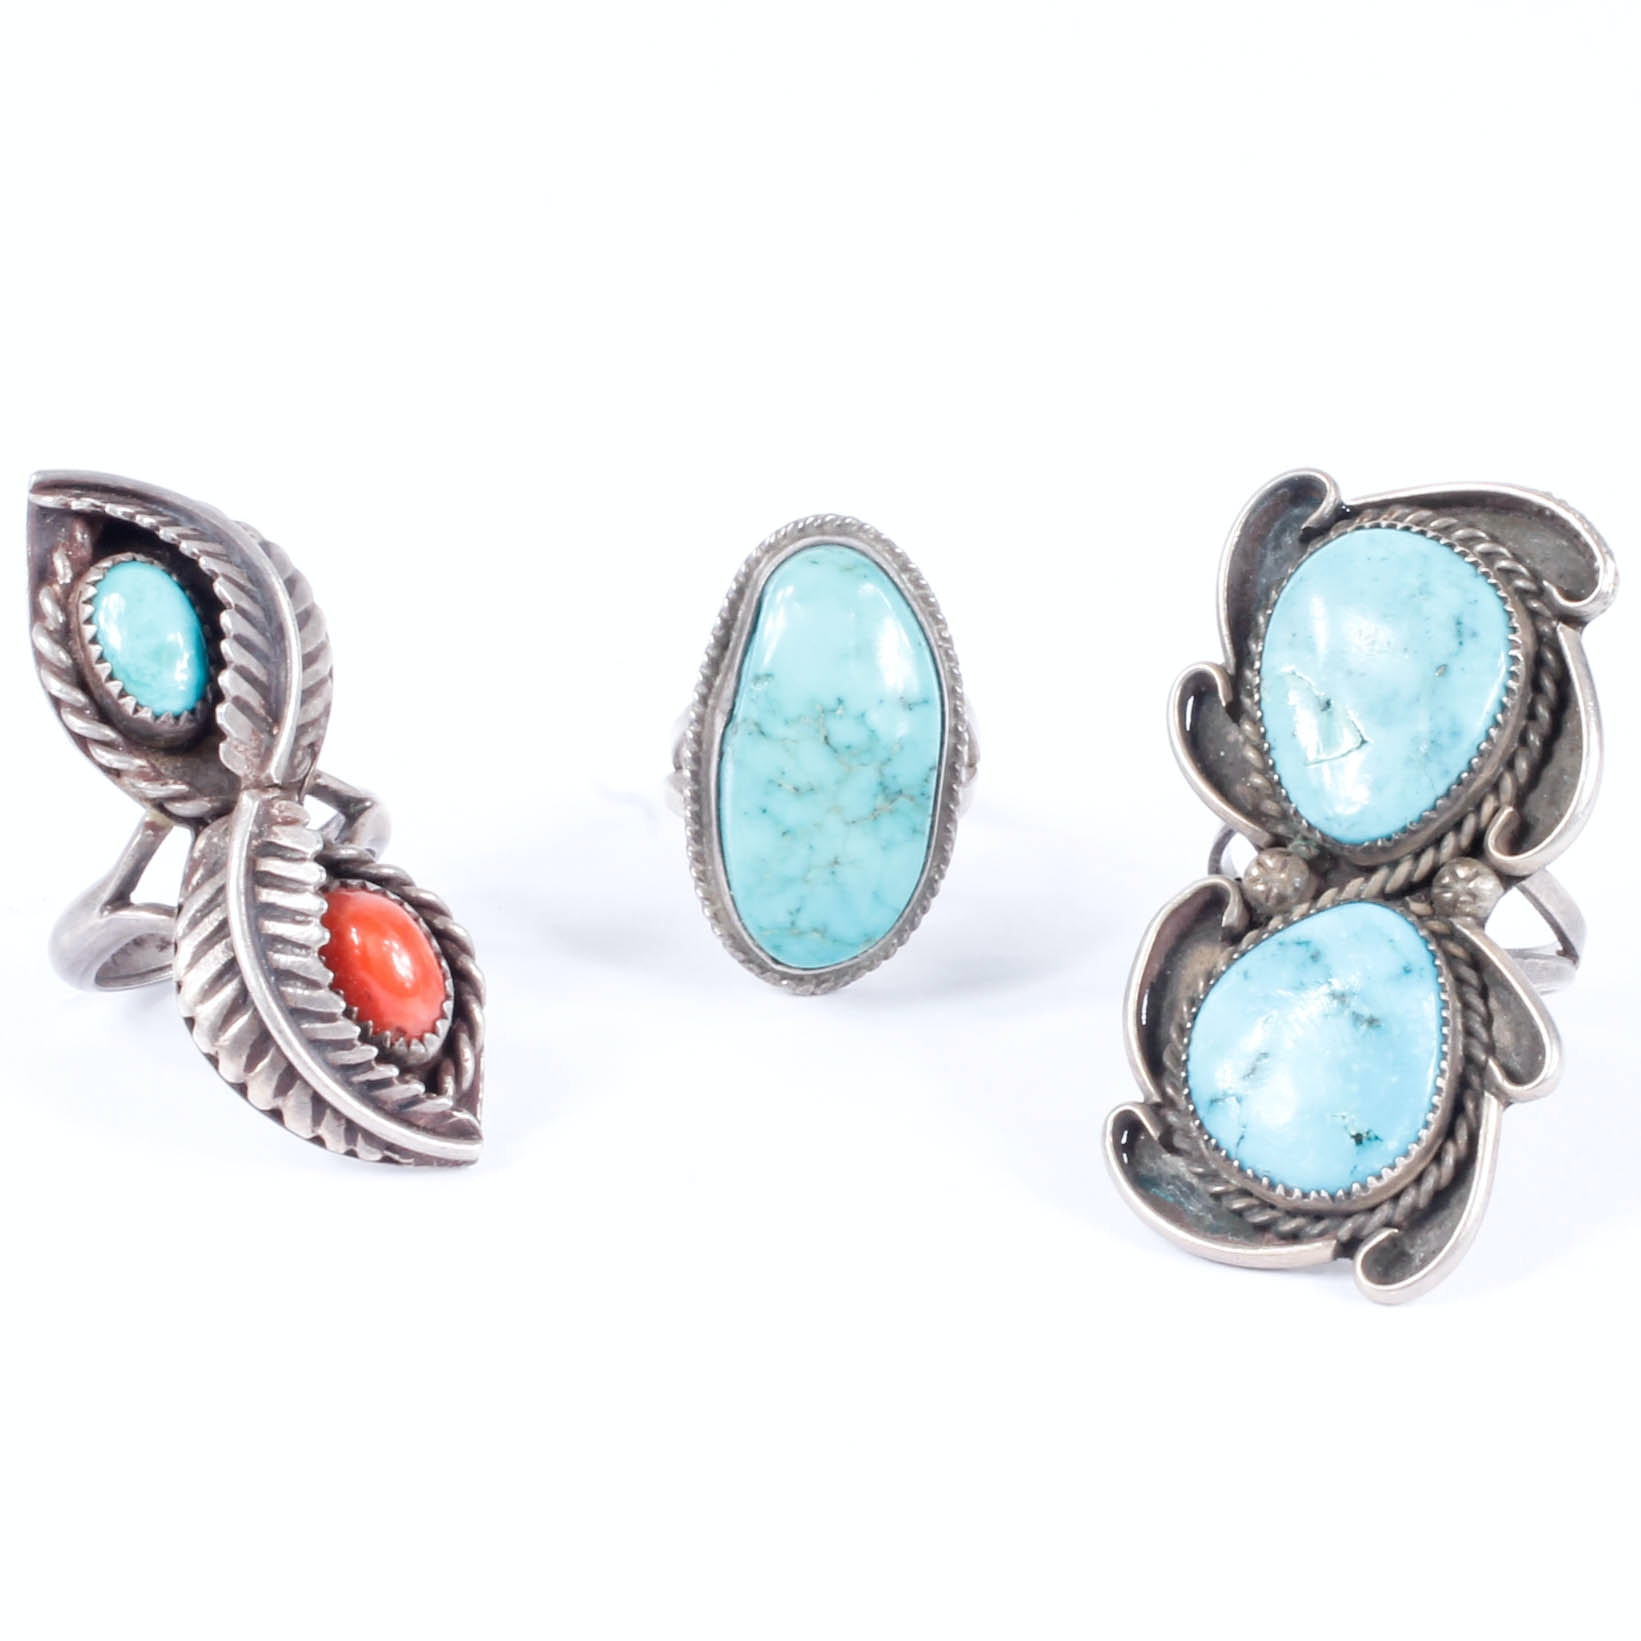 Native American-Style Sterling Silver, Turquoise and Coral Rings